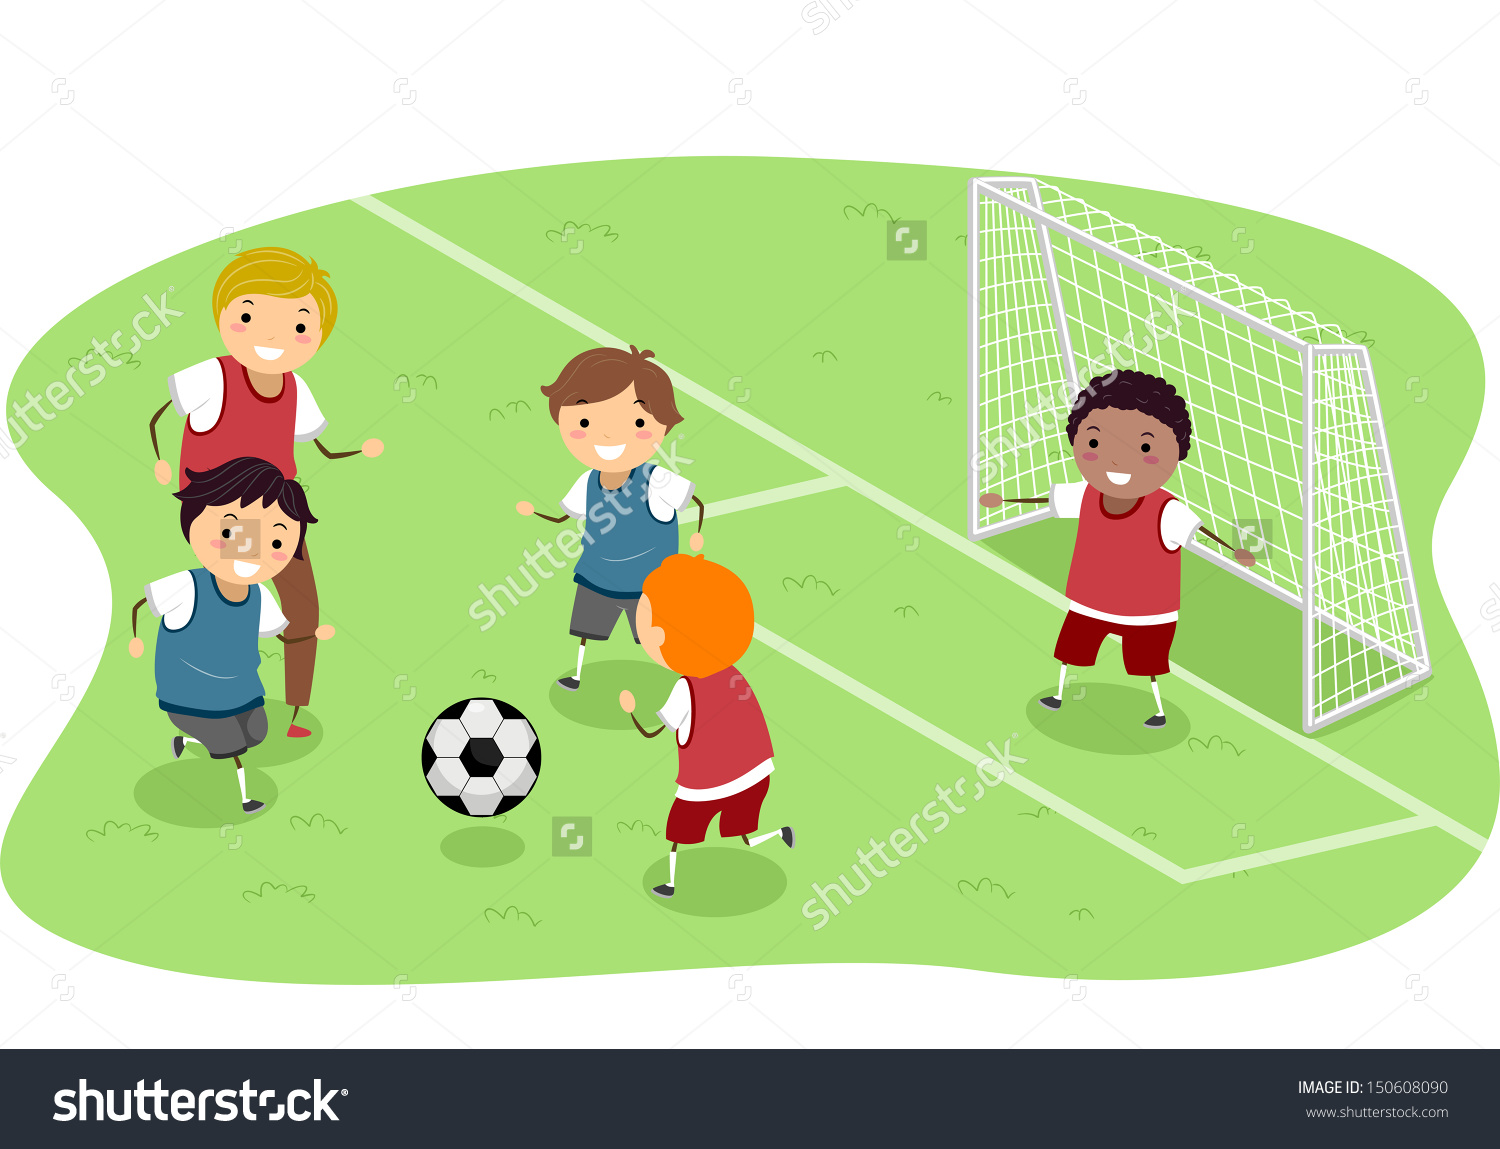 Friends Playing Soccer Clipart.